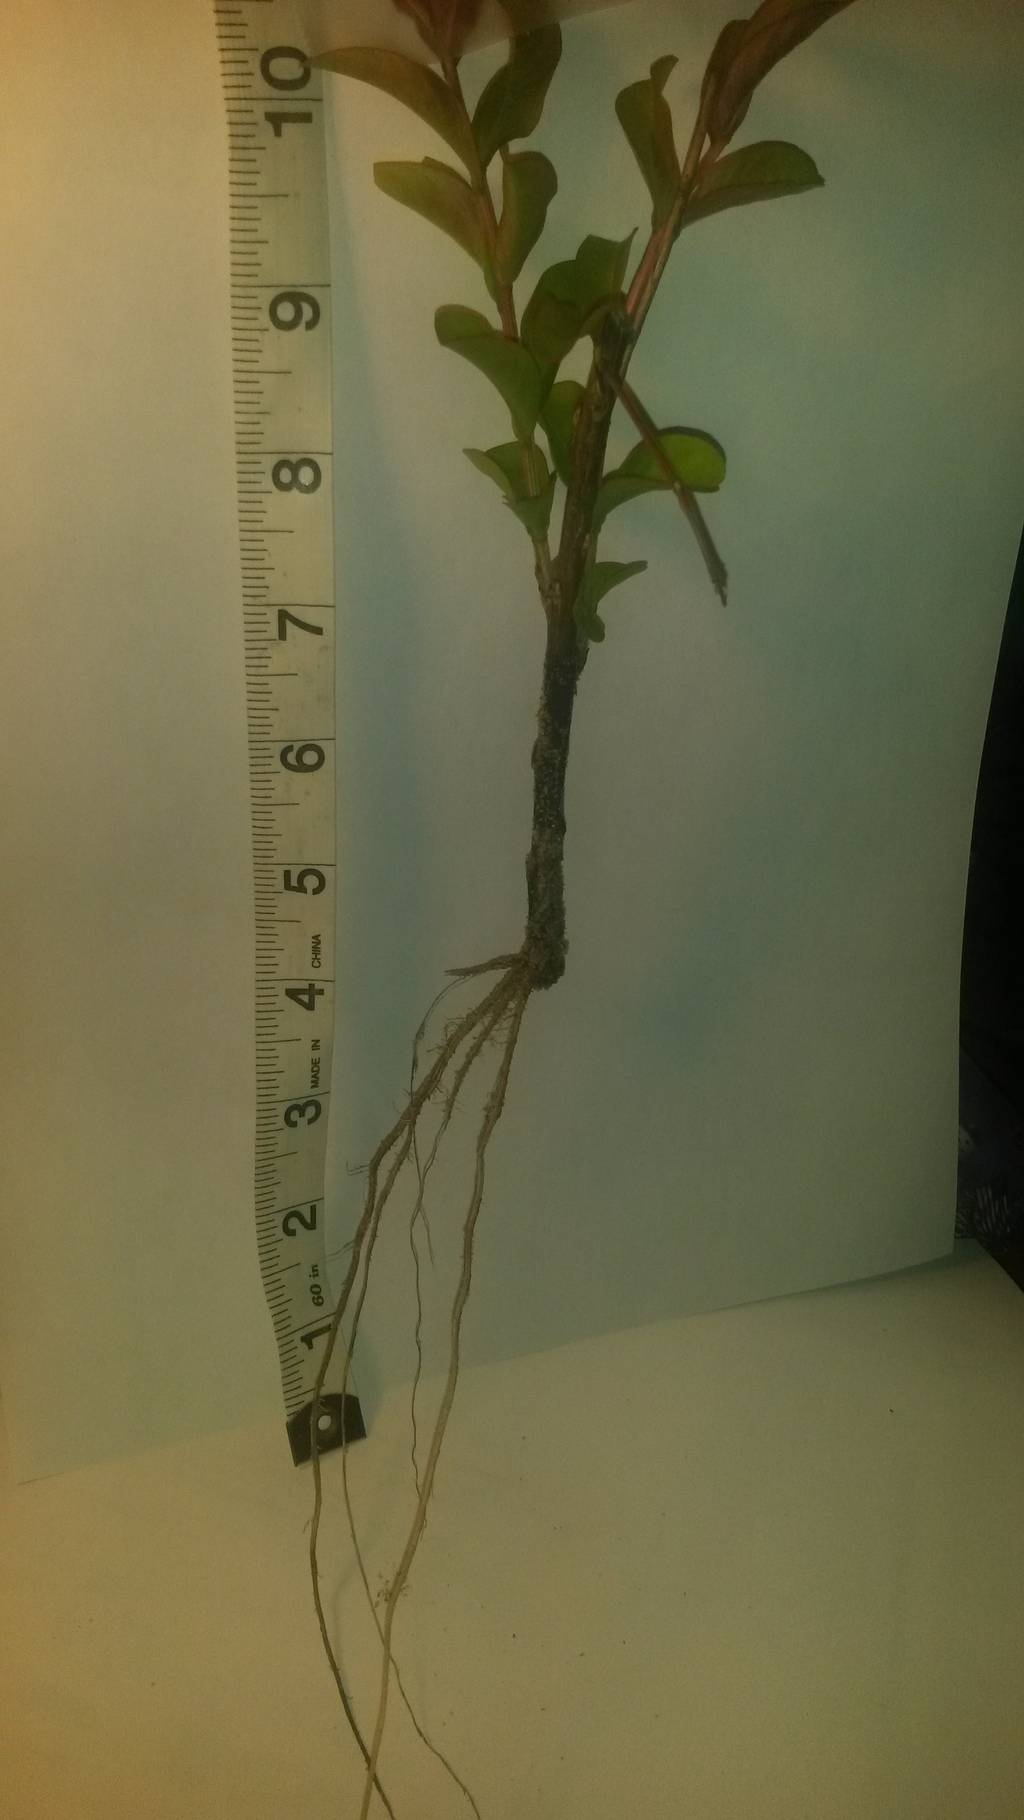 Rooted cuttings from Duncan Farms Nursery Plant%20pic%20RCS%20001_zpsbg28kuuu